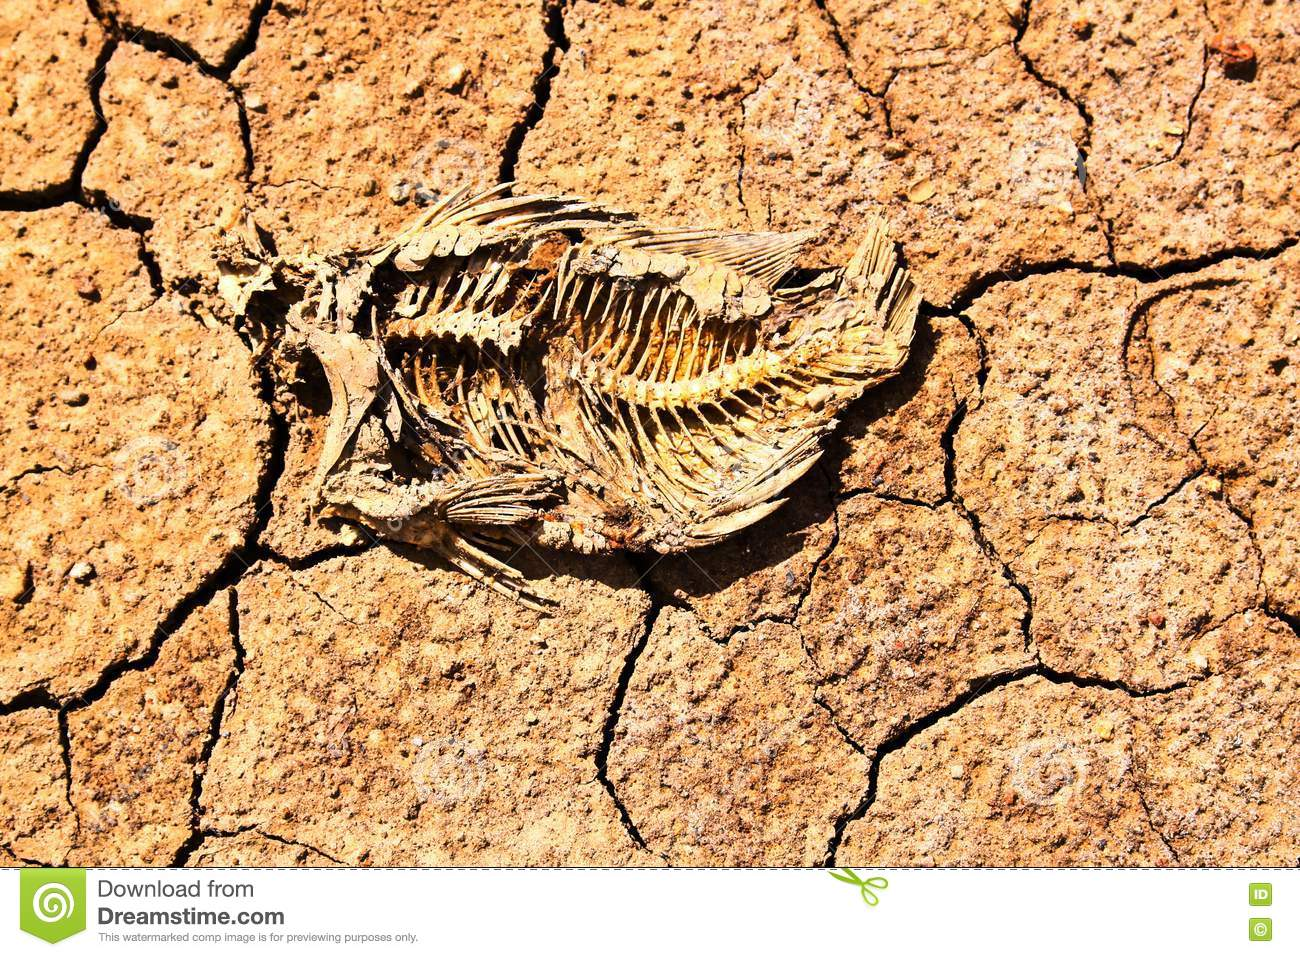 Fish die on the soil royalty free stock photo image for Soil 7 days to die